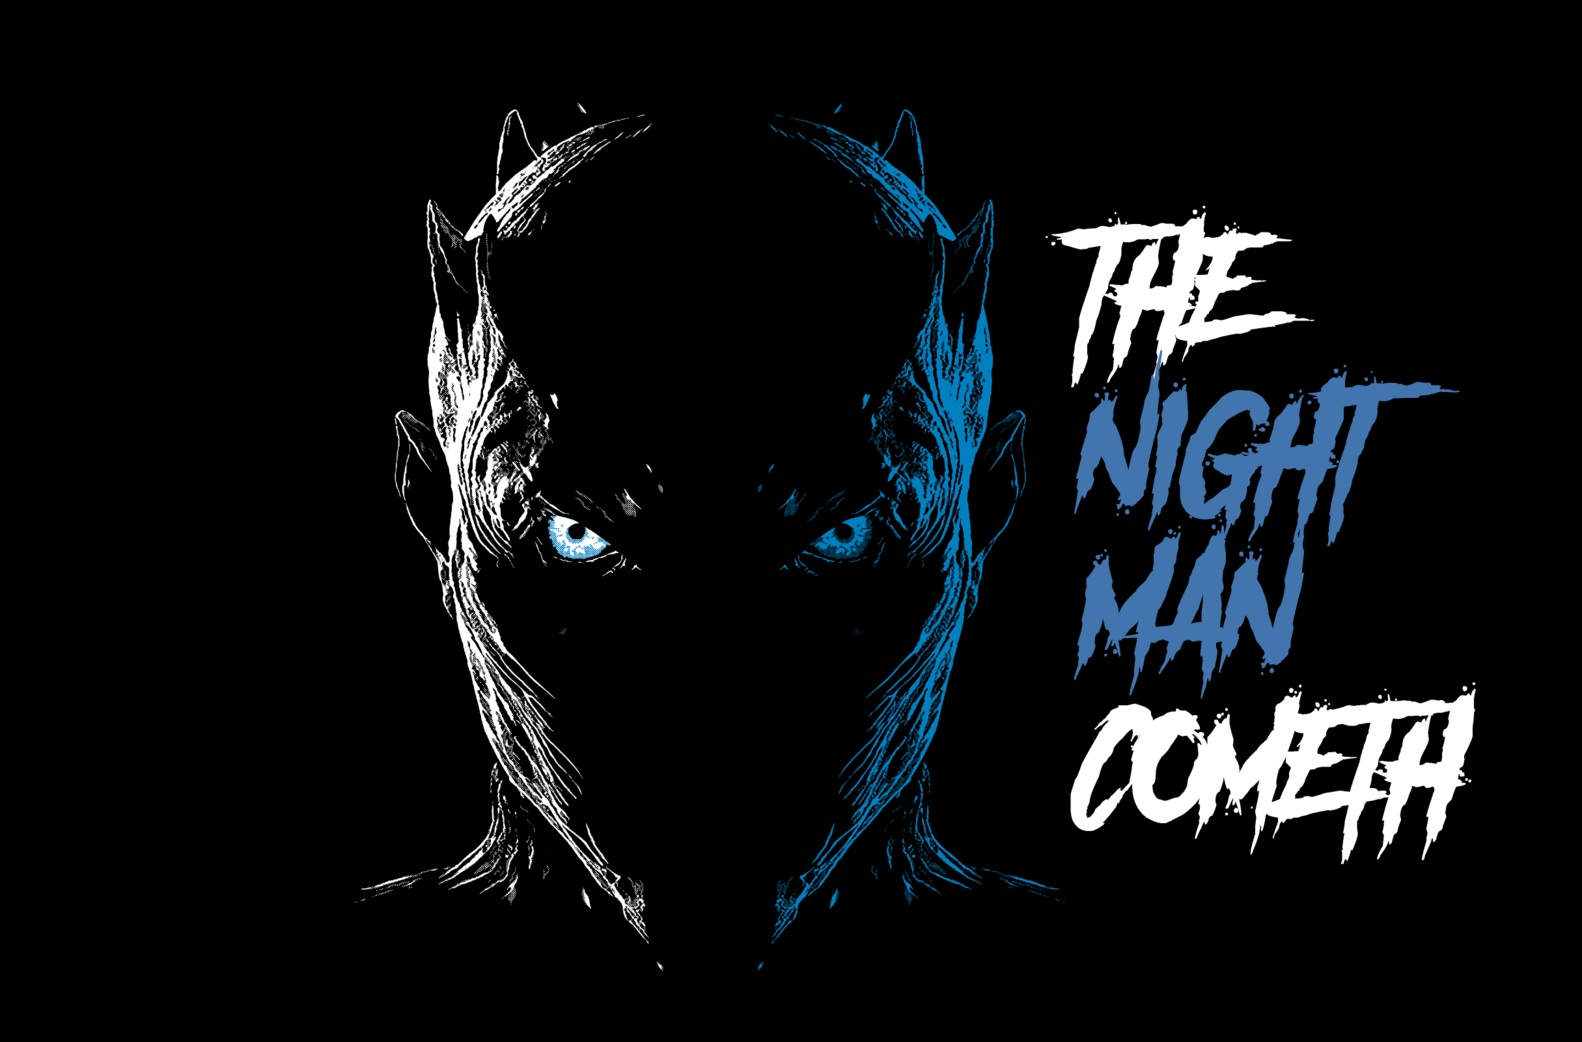 THE+NIGHT+MAN+COMETH+DESKTOP3.jpg